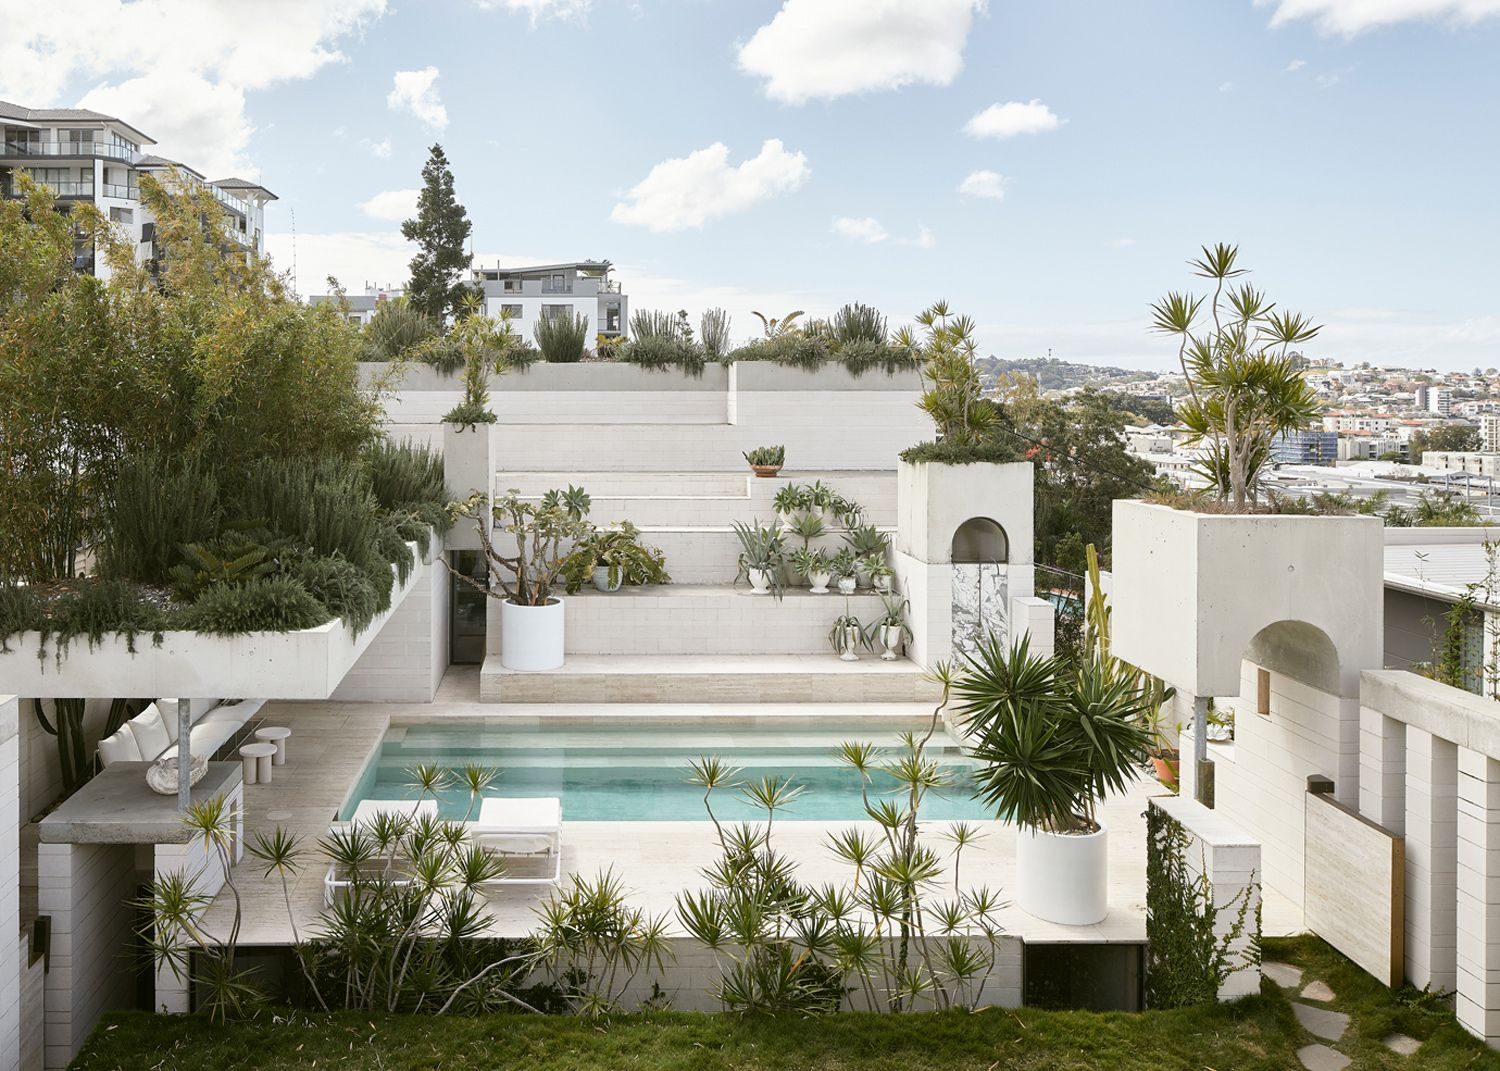 An Ambitious Vision La Scala By Richards Spence Landscape And Urbanism Landscape And Urbanism Architecture California Bungalow